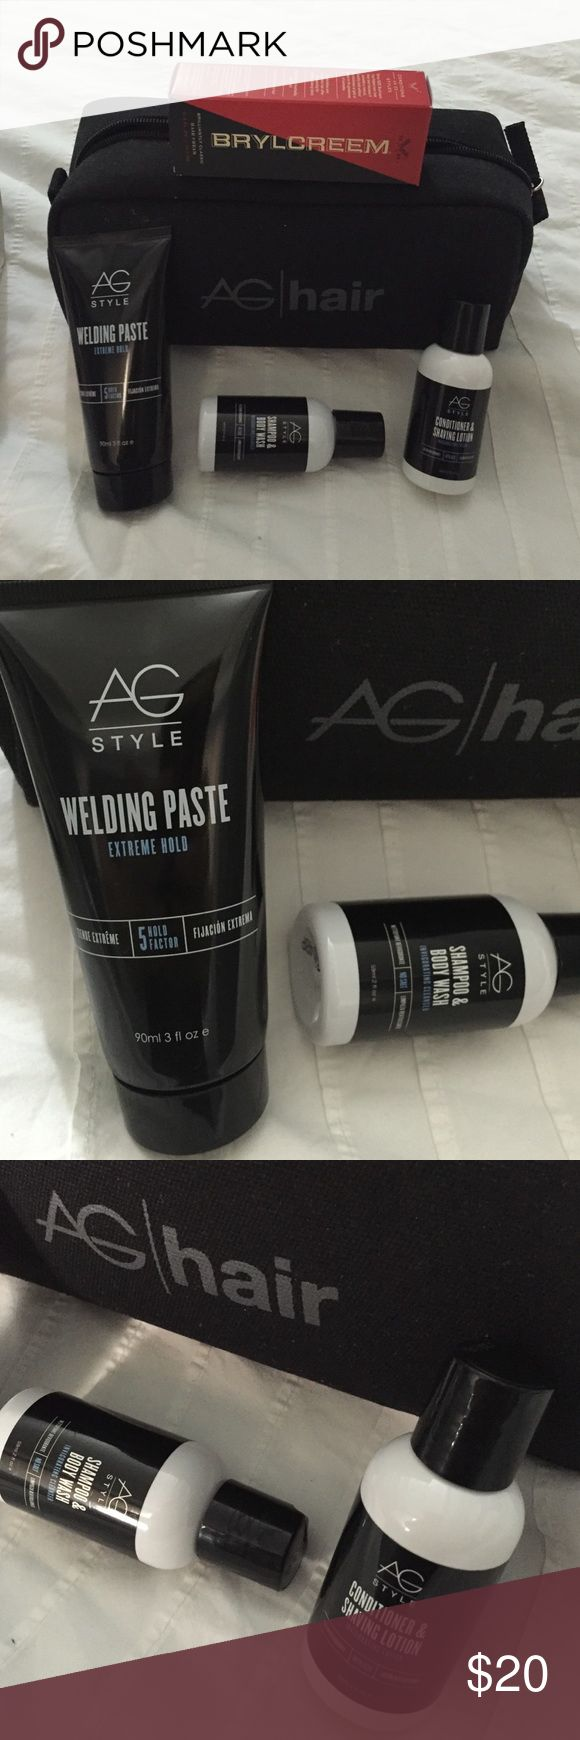 """Men's AG hair travel set + bag NWT NWT men's  travel in style set from AG hair comes w/a 3 fluid ounce """"welding paste""""extreme hold gel + a 2 ounce shampoo/body wash & a 2 ounce conditioner/shaving lotion NOW with bonus travel size Brylcreem. $35 value. $20 now Sephora Other"""